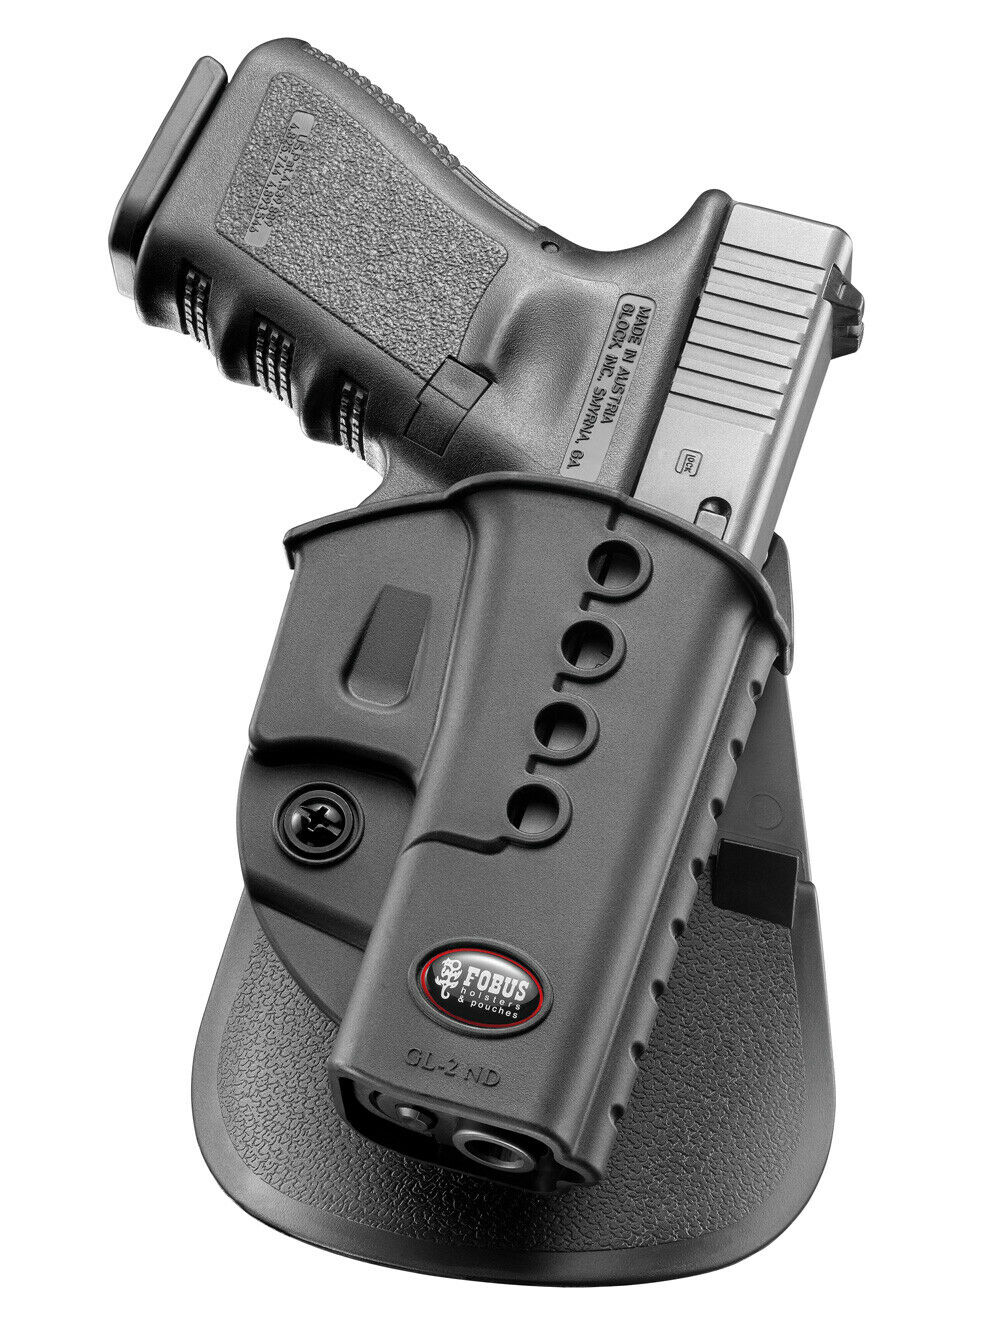 Details about Fobus left hand holster for glock 17/19/22/23/31/32/34/35/41